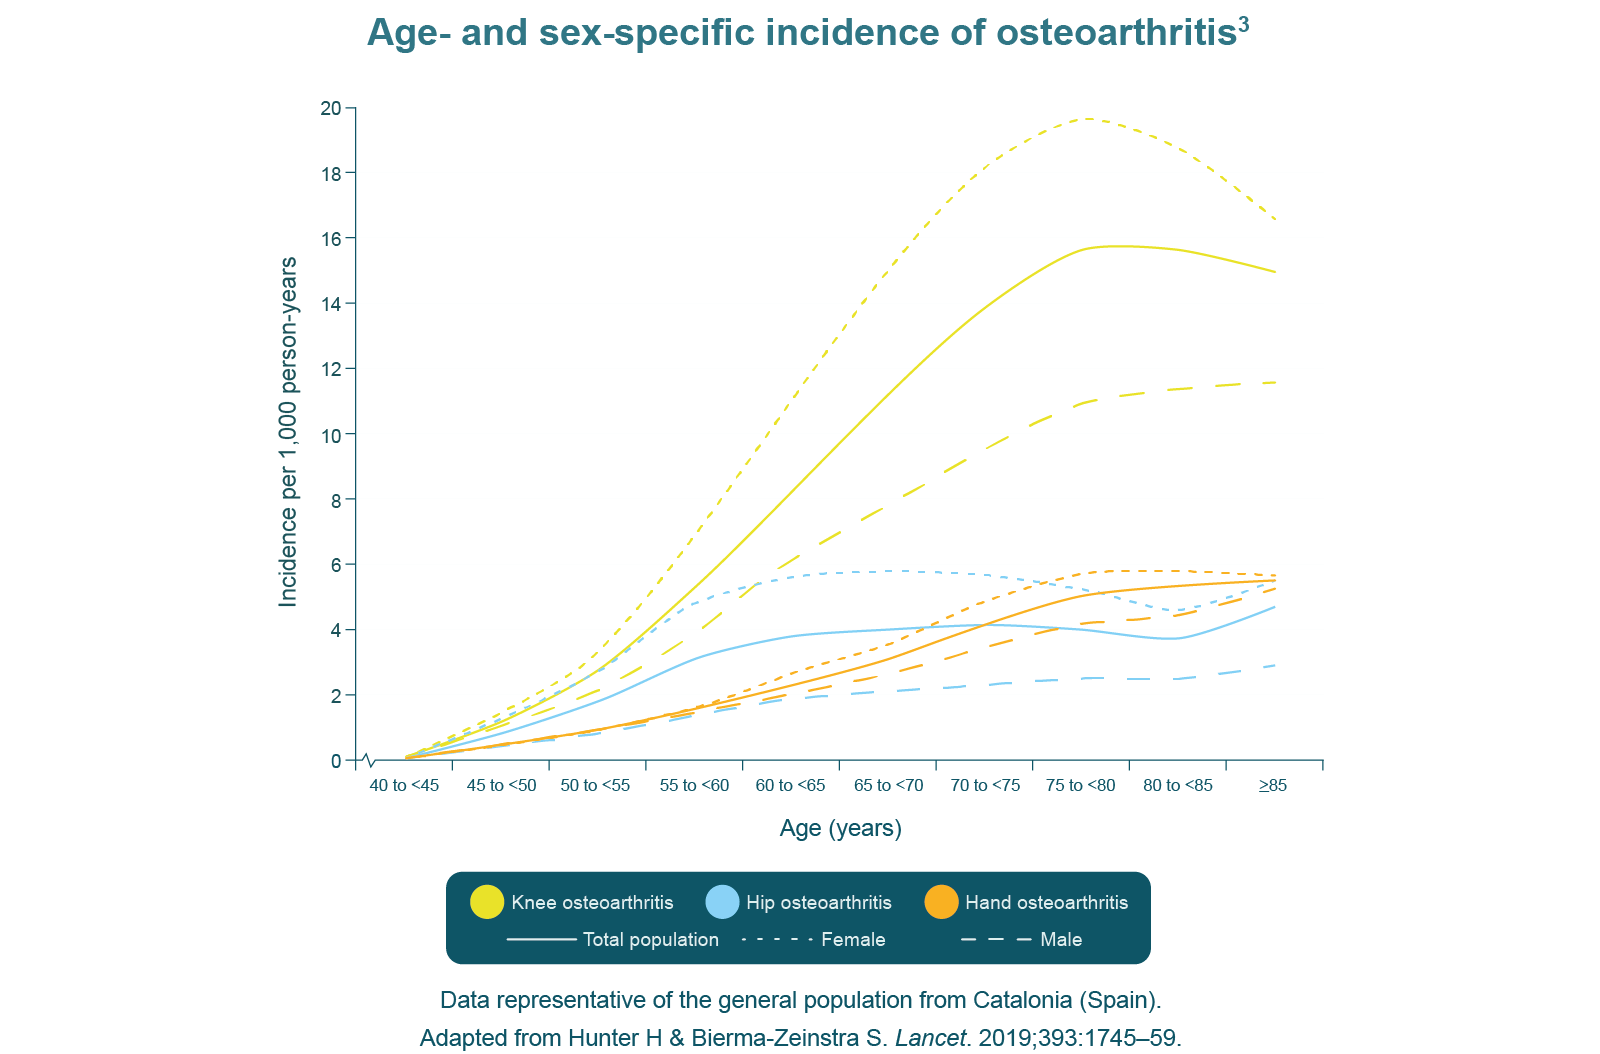 Age and sex specific incidence of osteoarthritis